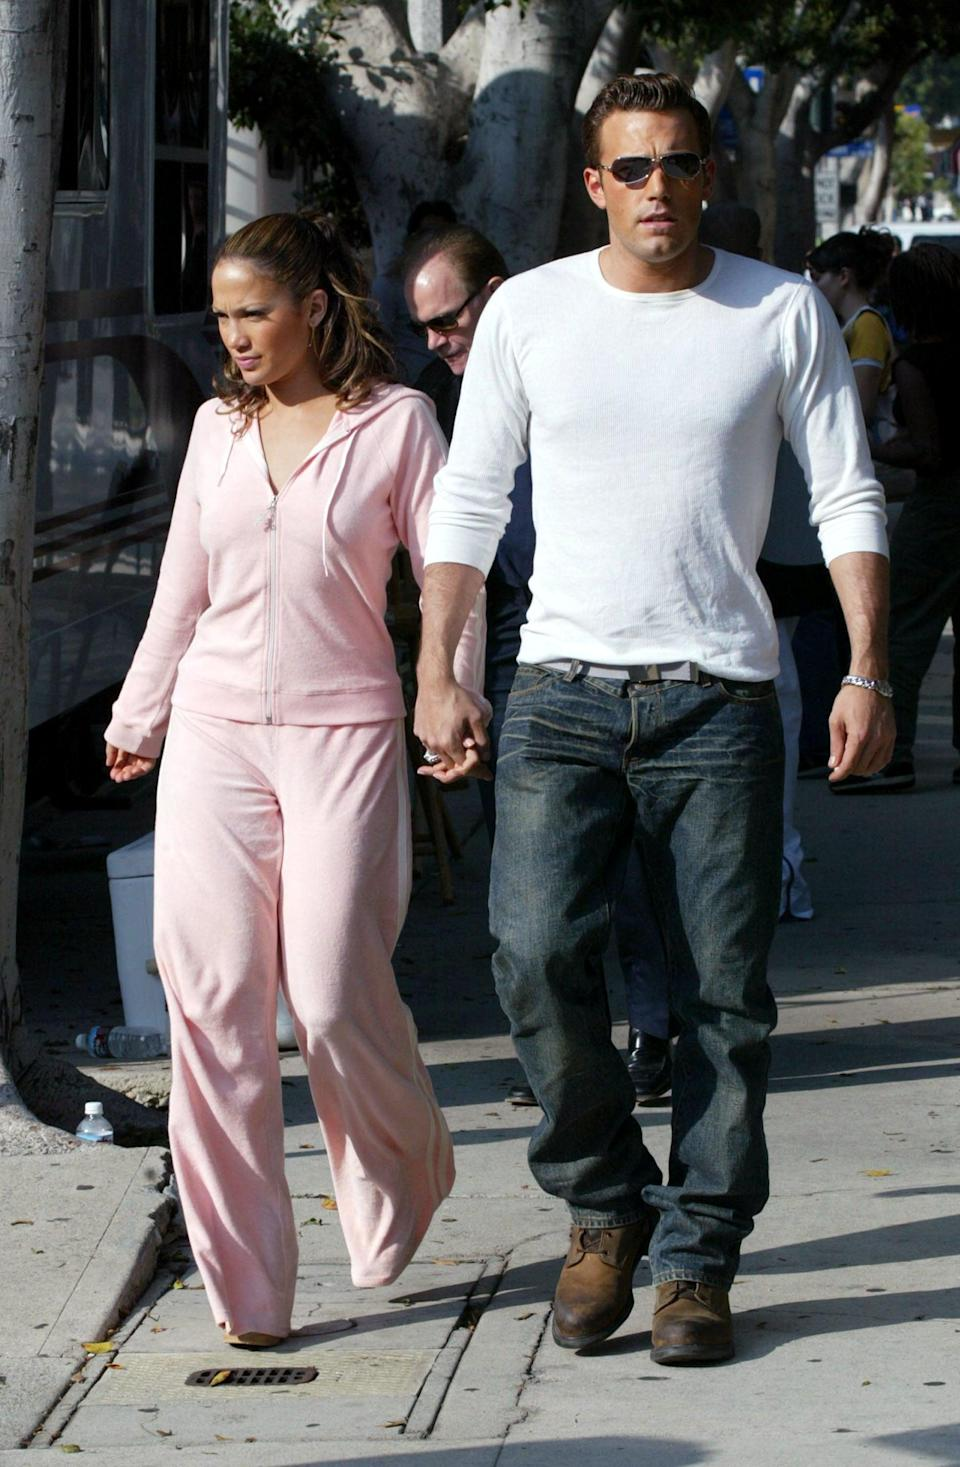 <p>On a stroll in Beverly Hills in October 2002, the couple are an early aughts mood, from the baby pink velour tracksuit to the baggy jeans and shades.</p>